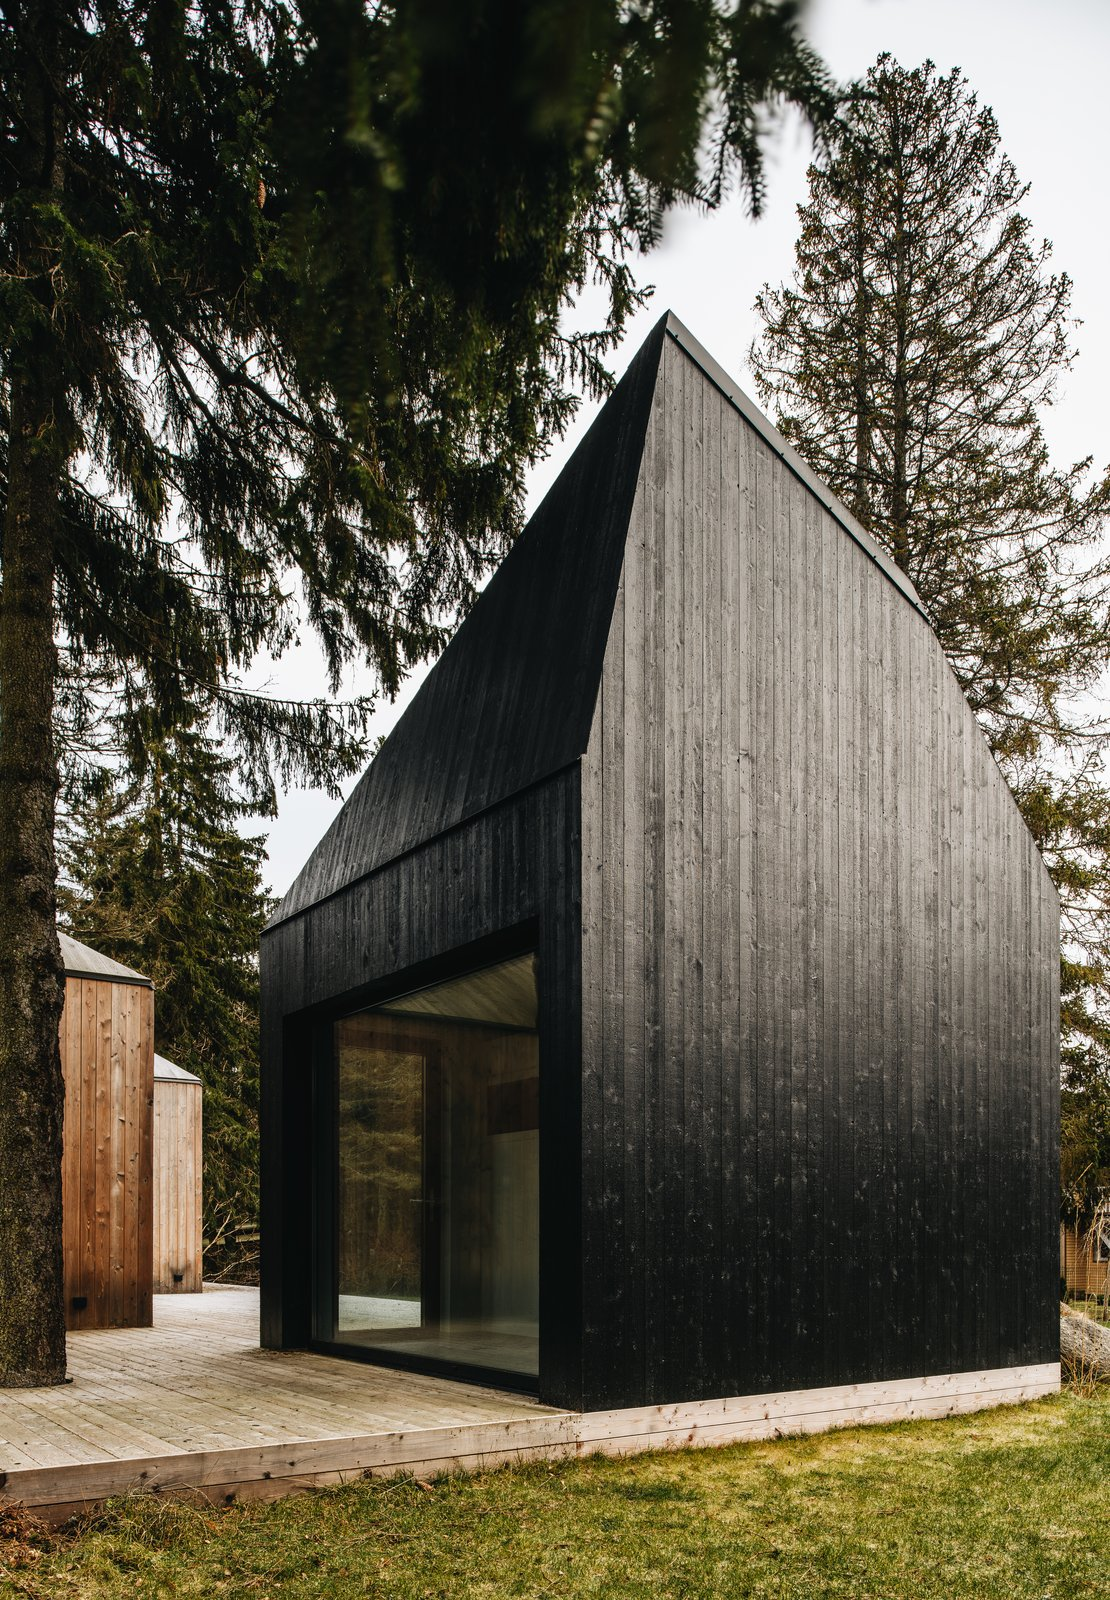 The cabin where the sauna is located was painted in black tar.